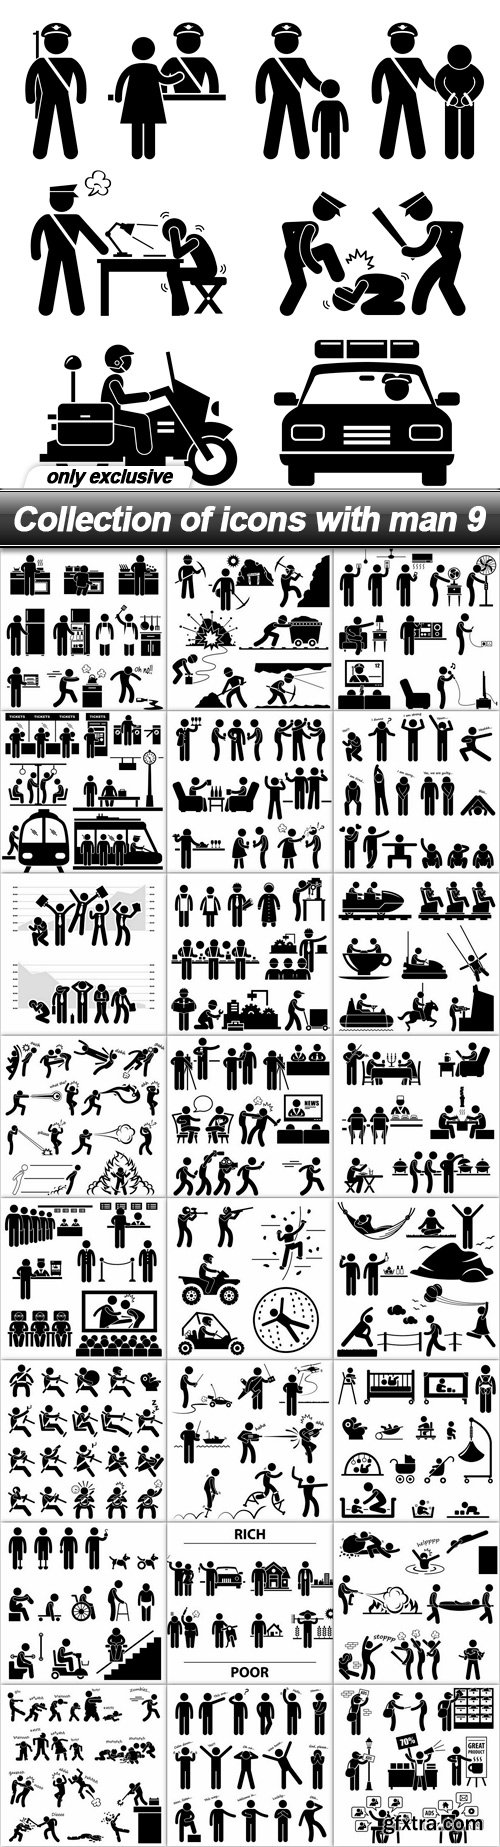 Collection of icons with man 9 - 25 EPS